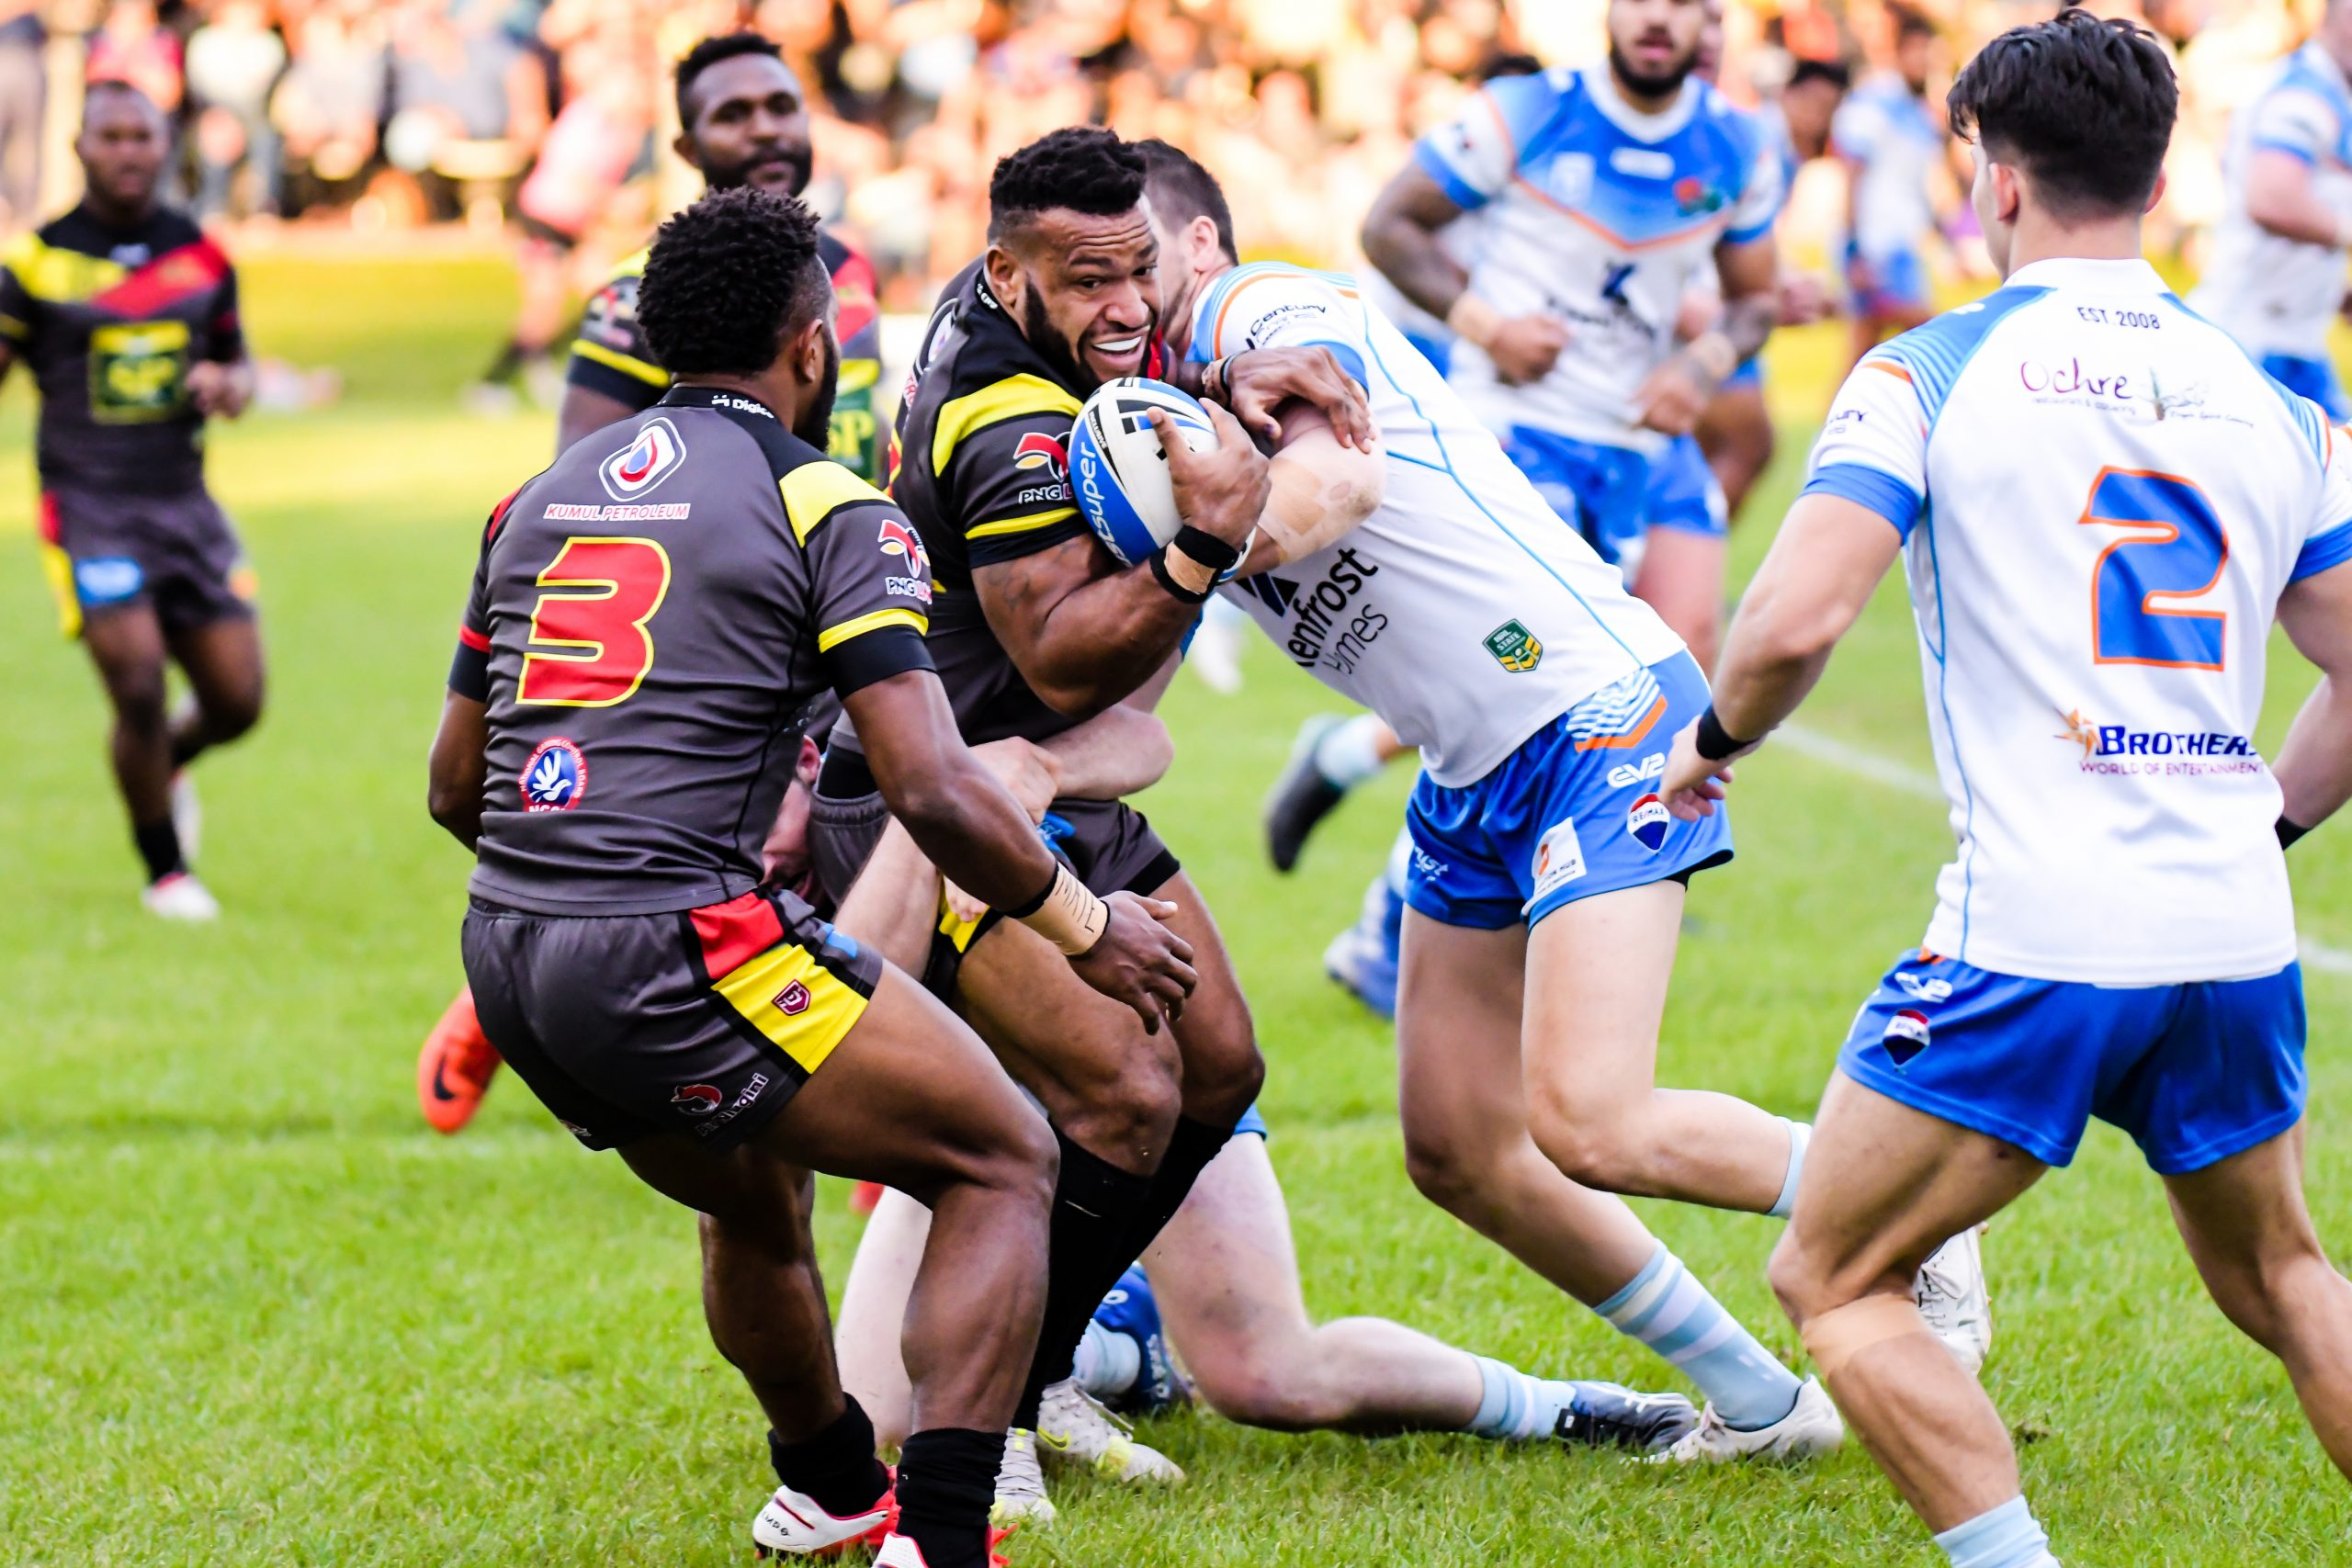 Intrust Super Cup & Hastings Colts seasons to be extended